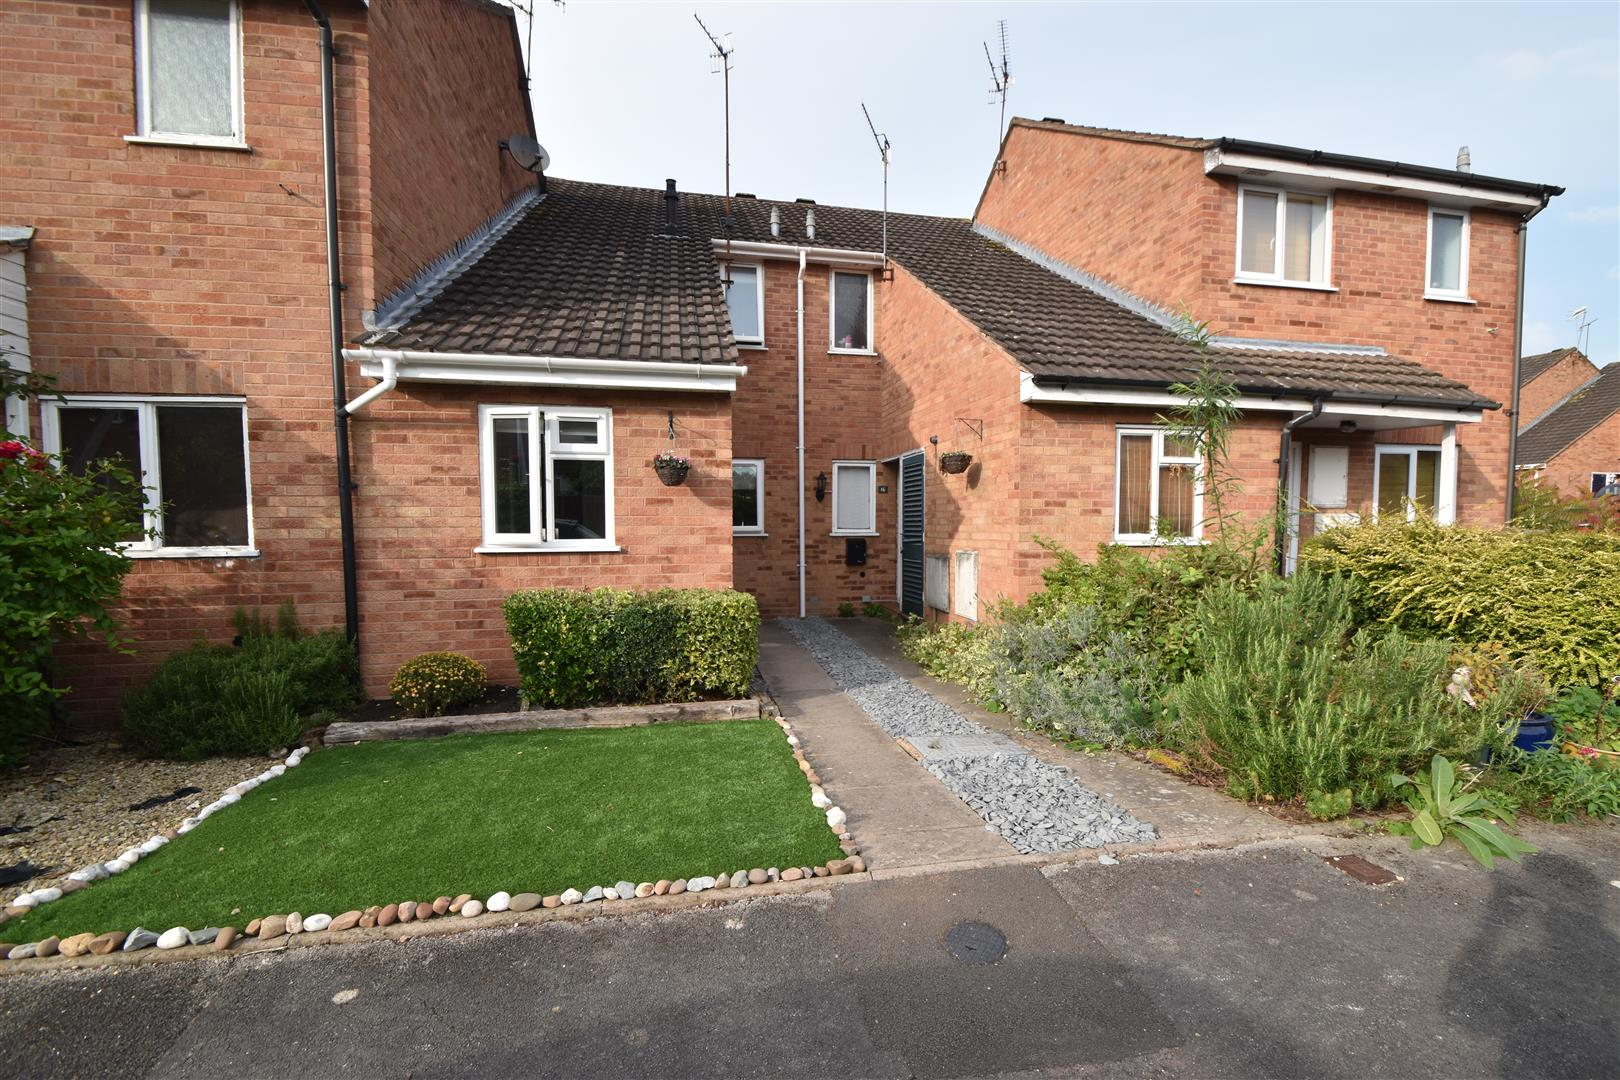 2 Bedrooms Terraced House for sale in Woodland Close, Worcester